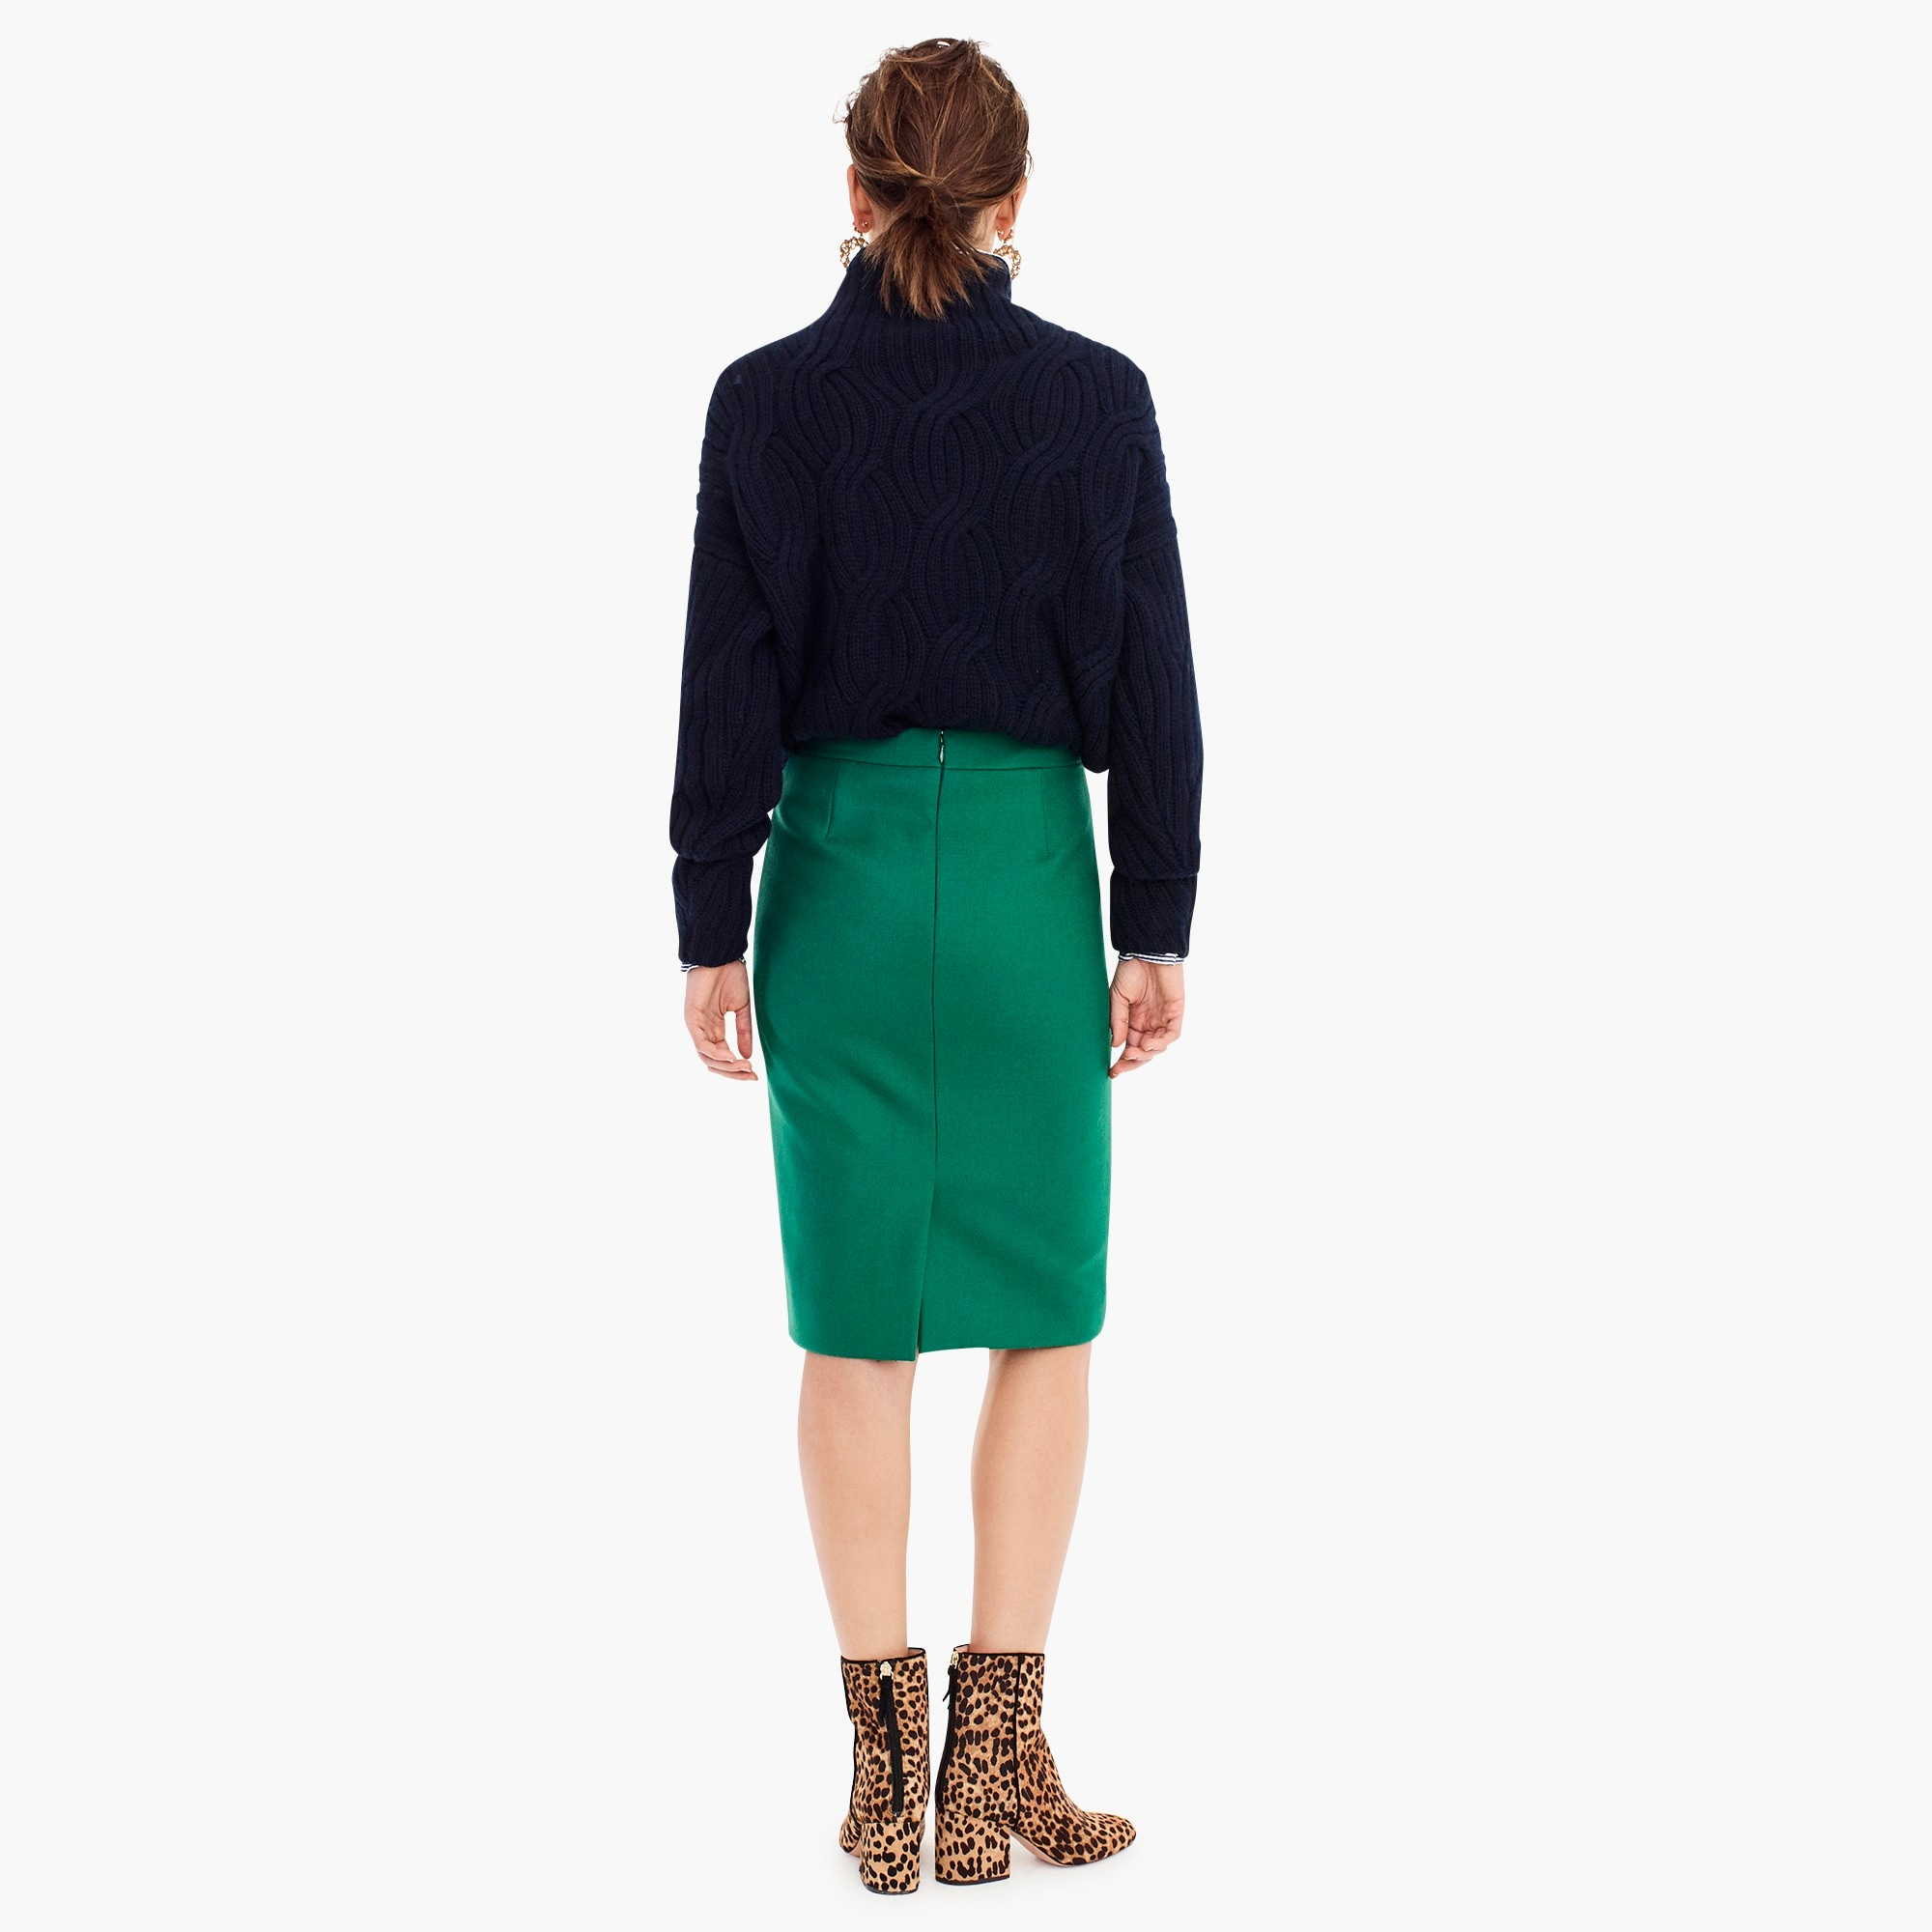 Image 5 for No. 2 pencil skirt in double-serge wool